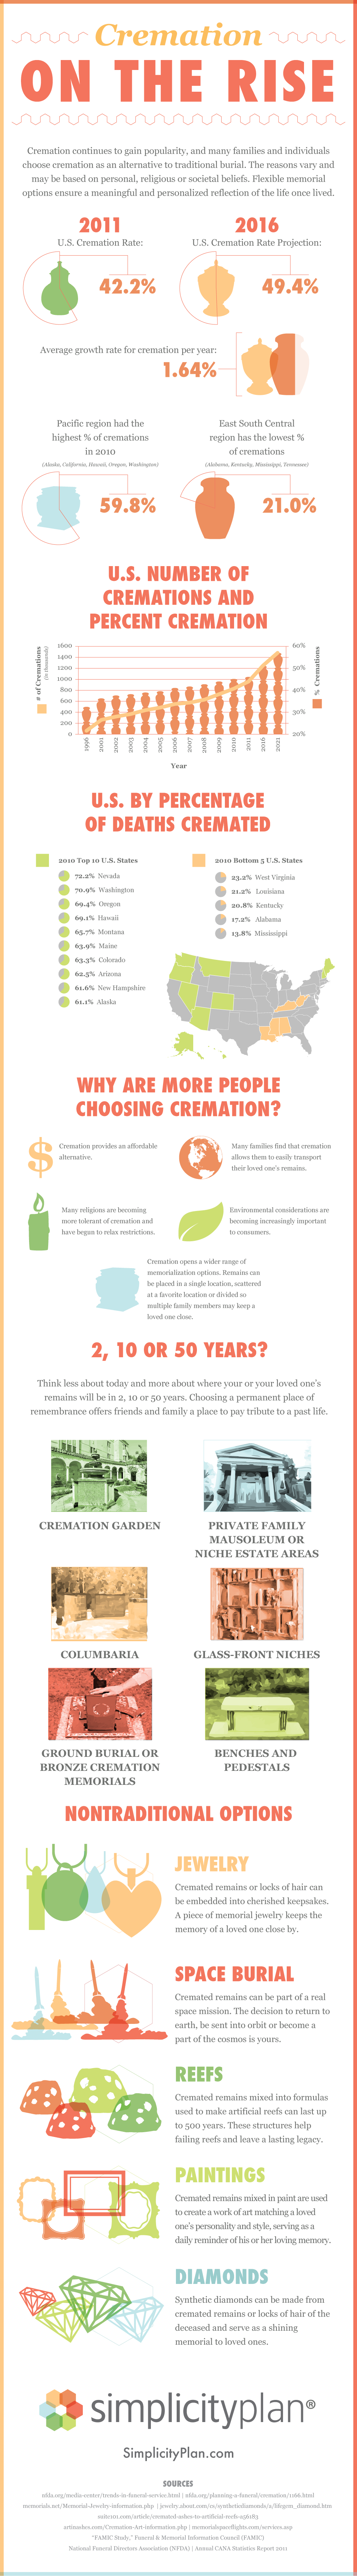 Infographic From Simplicityplan Com Detailing The Latest Cremation